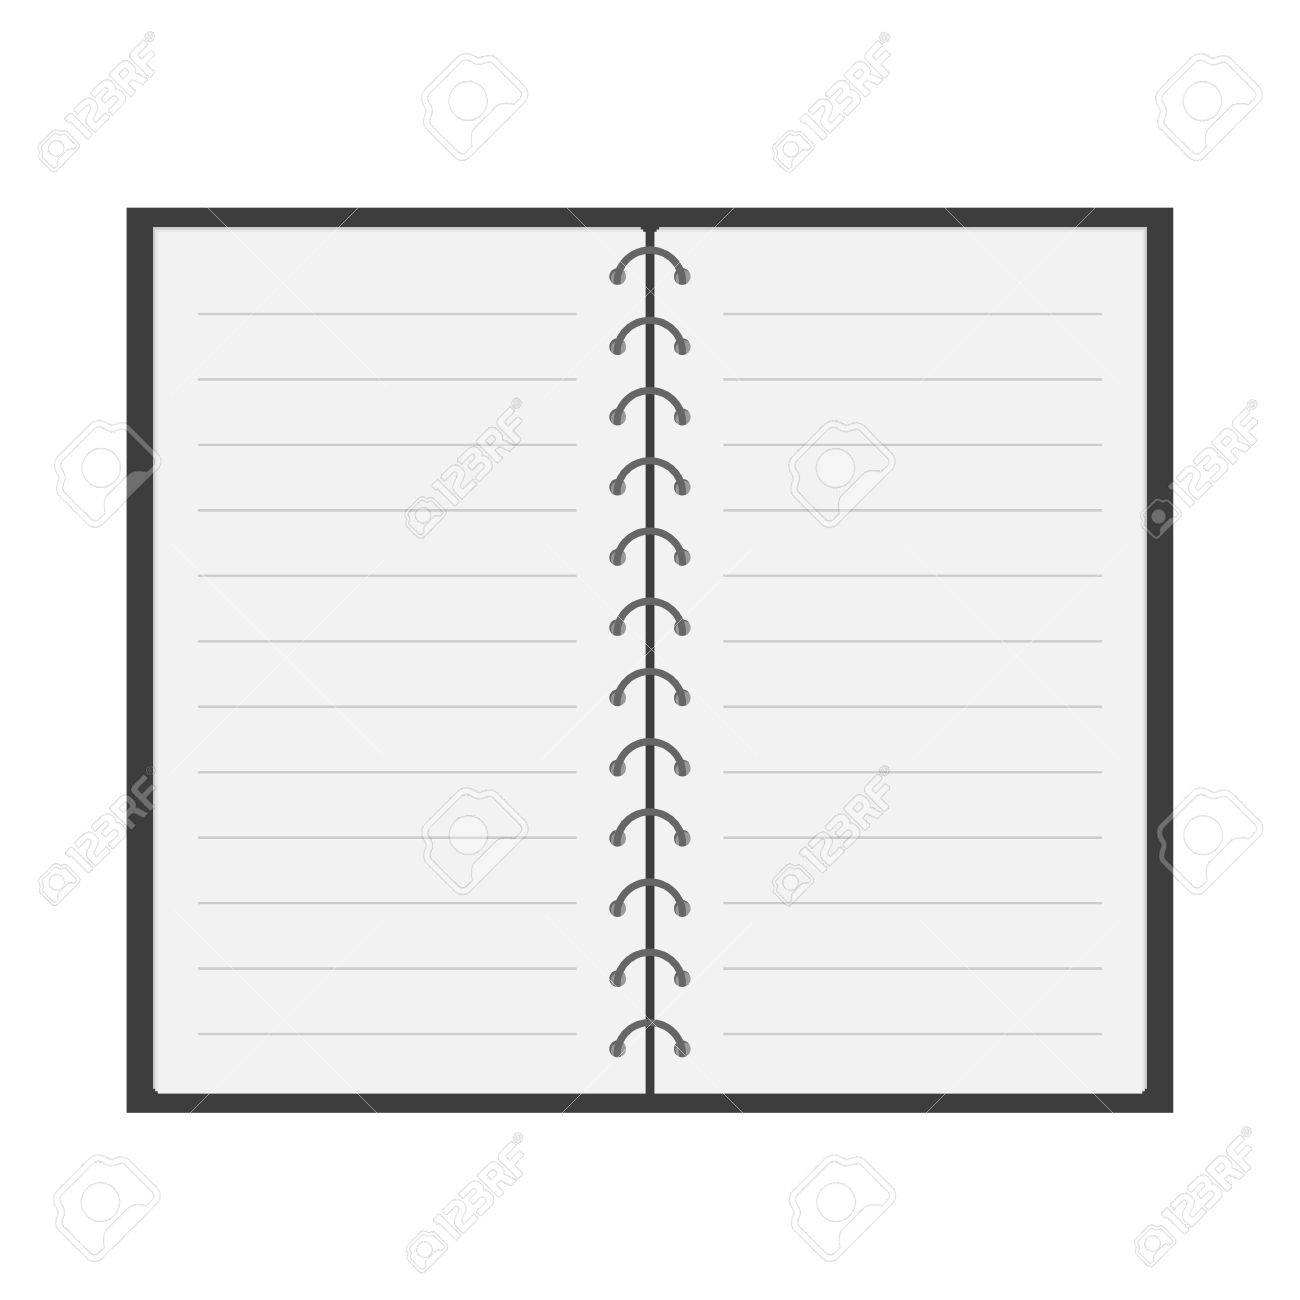 Open Notebook With Spiral And Blank Lined Paper. Flat Design ...